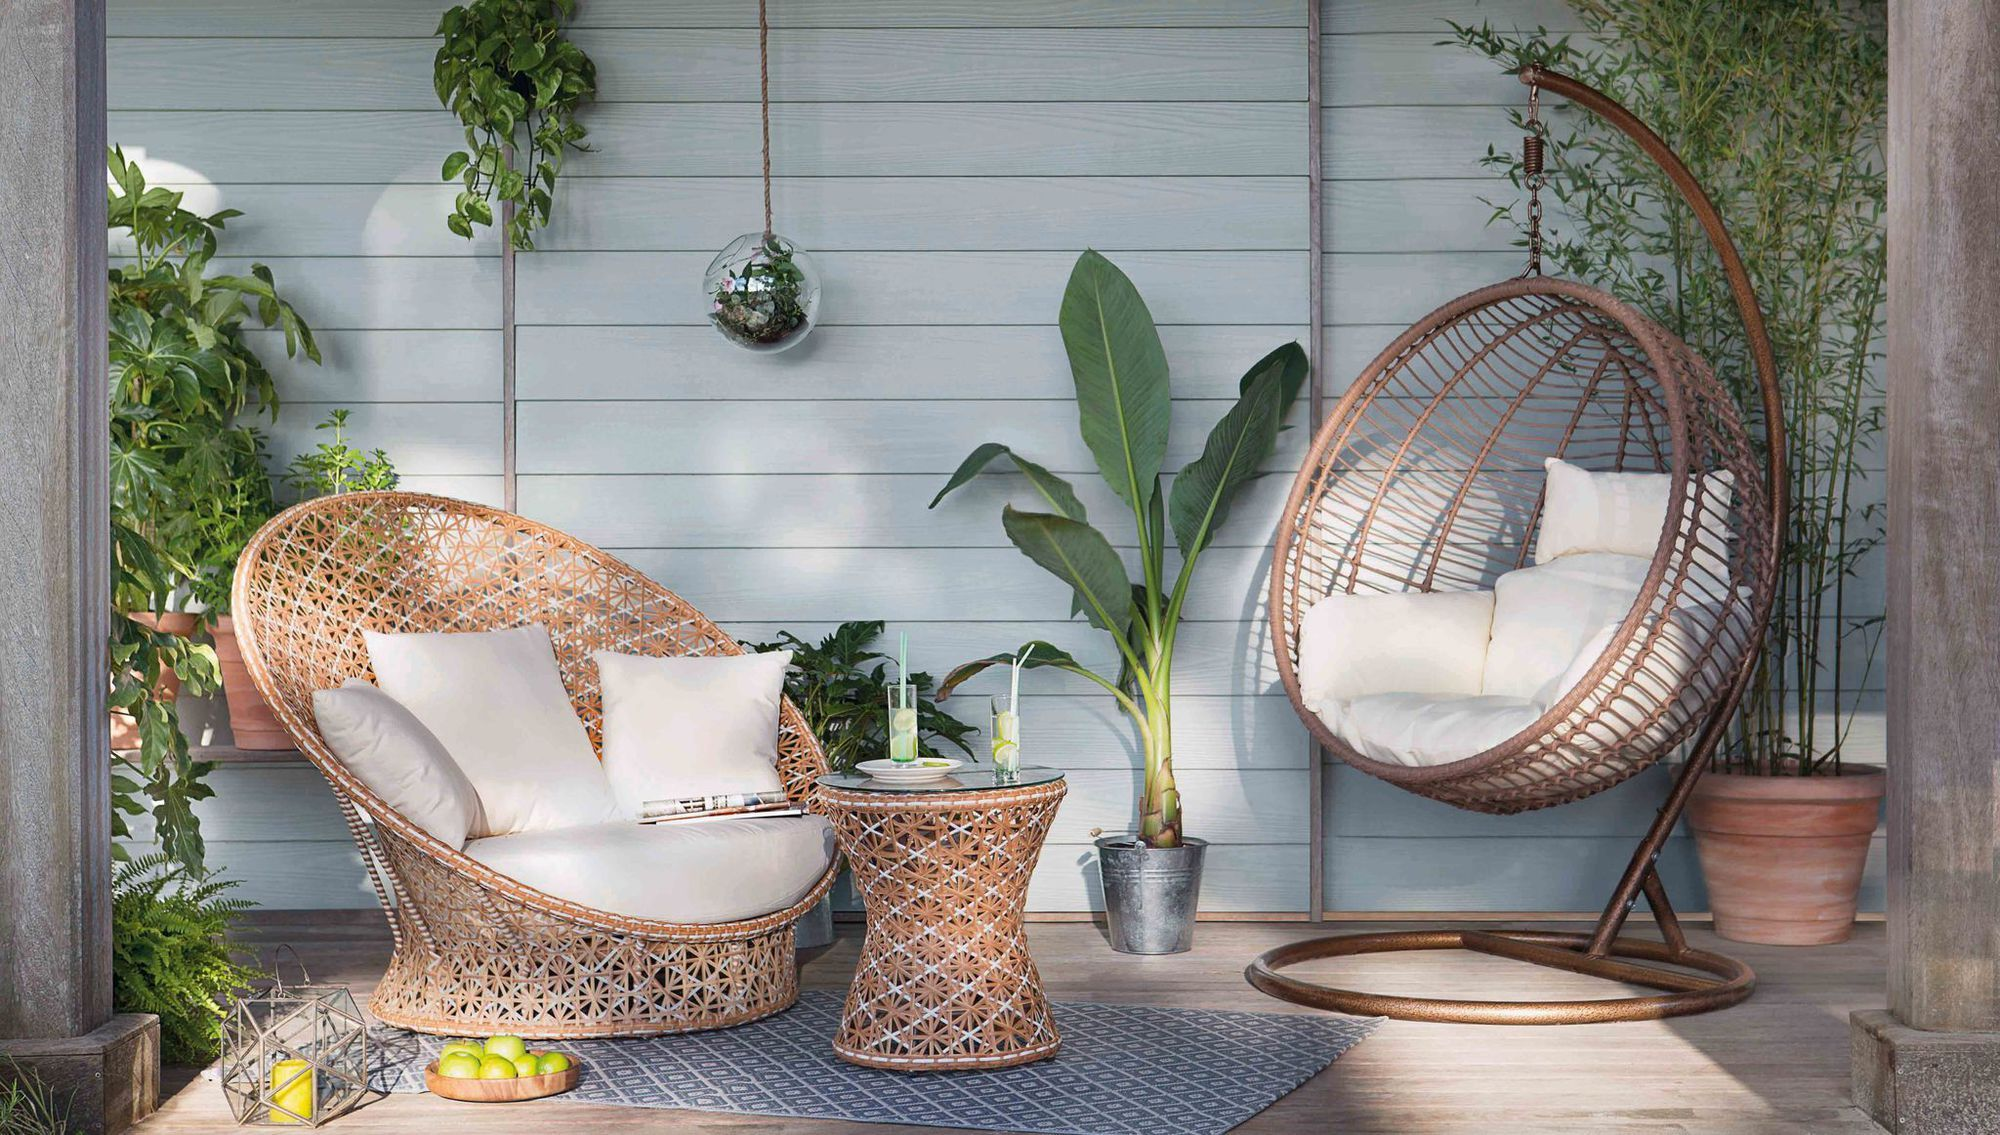 Déco jardin : ambiance lounge et cosy | jardin - terrasse | Small ...